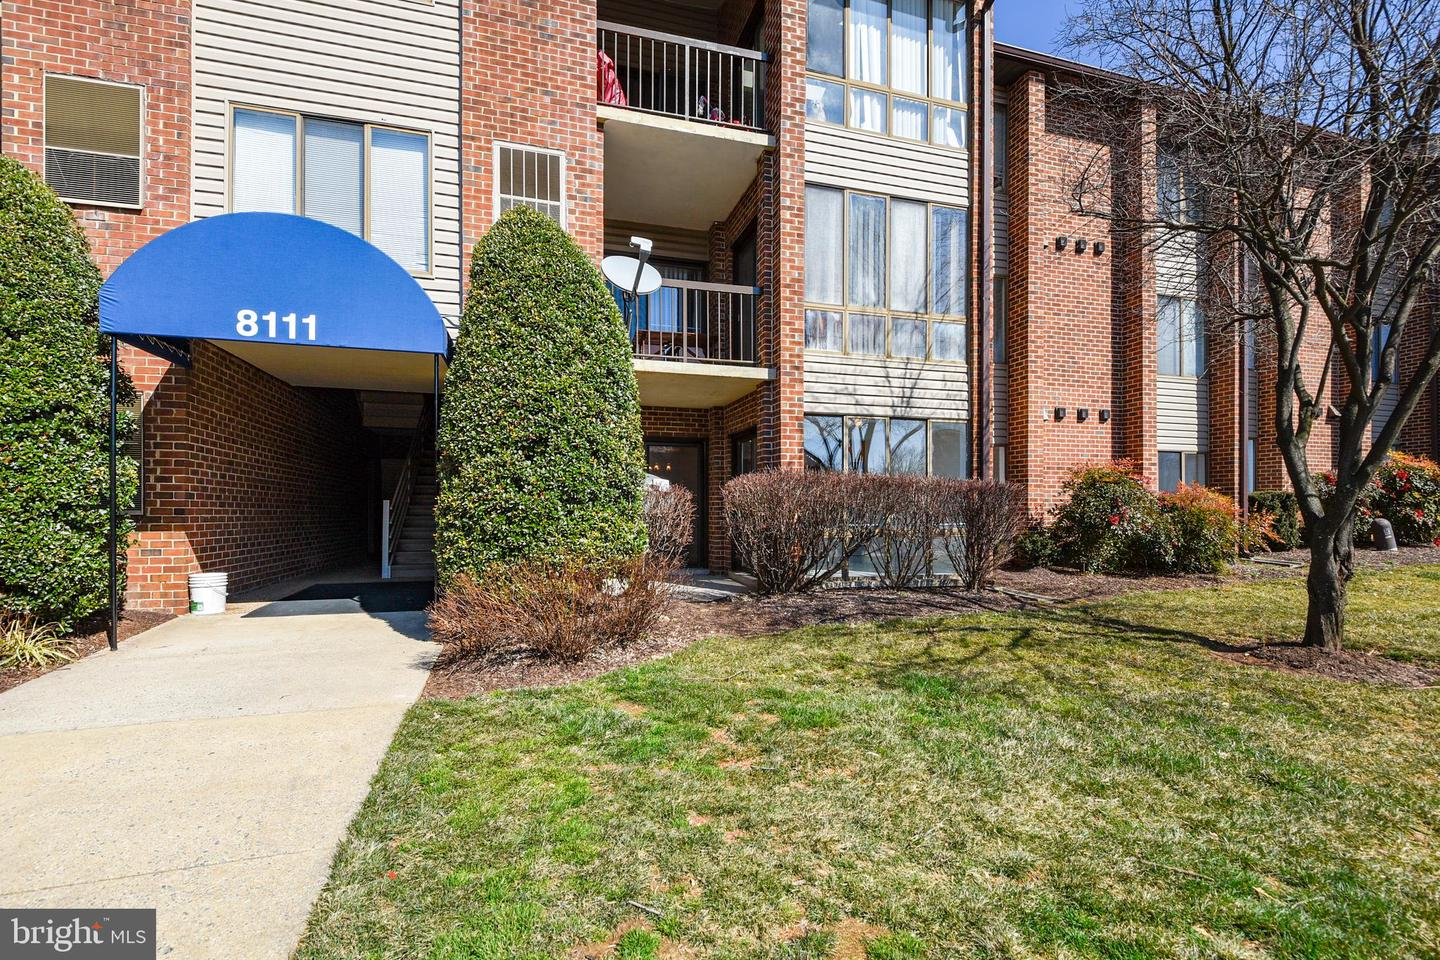 condominiums for Sale at 8111 Needwood Rd #t104 8111 Needwood Rd #t104 Derwood, Maryland 20855 United States